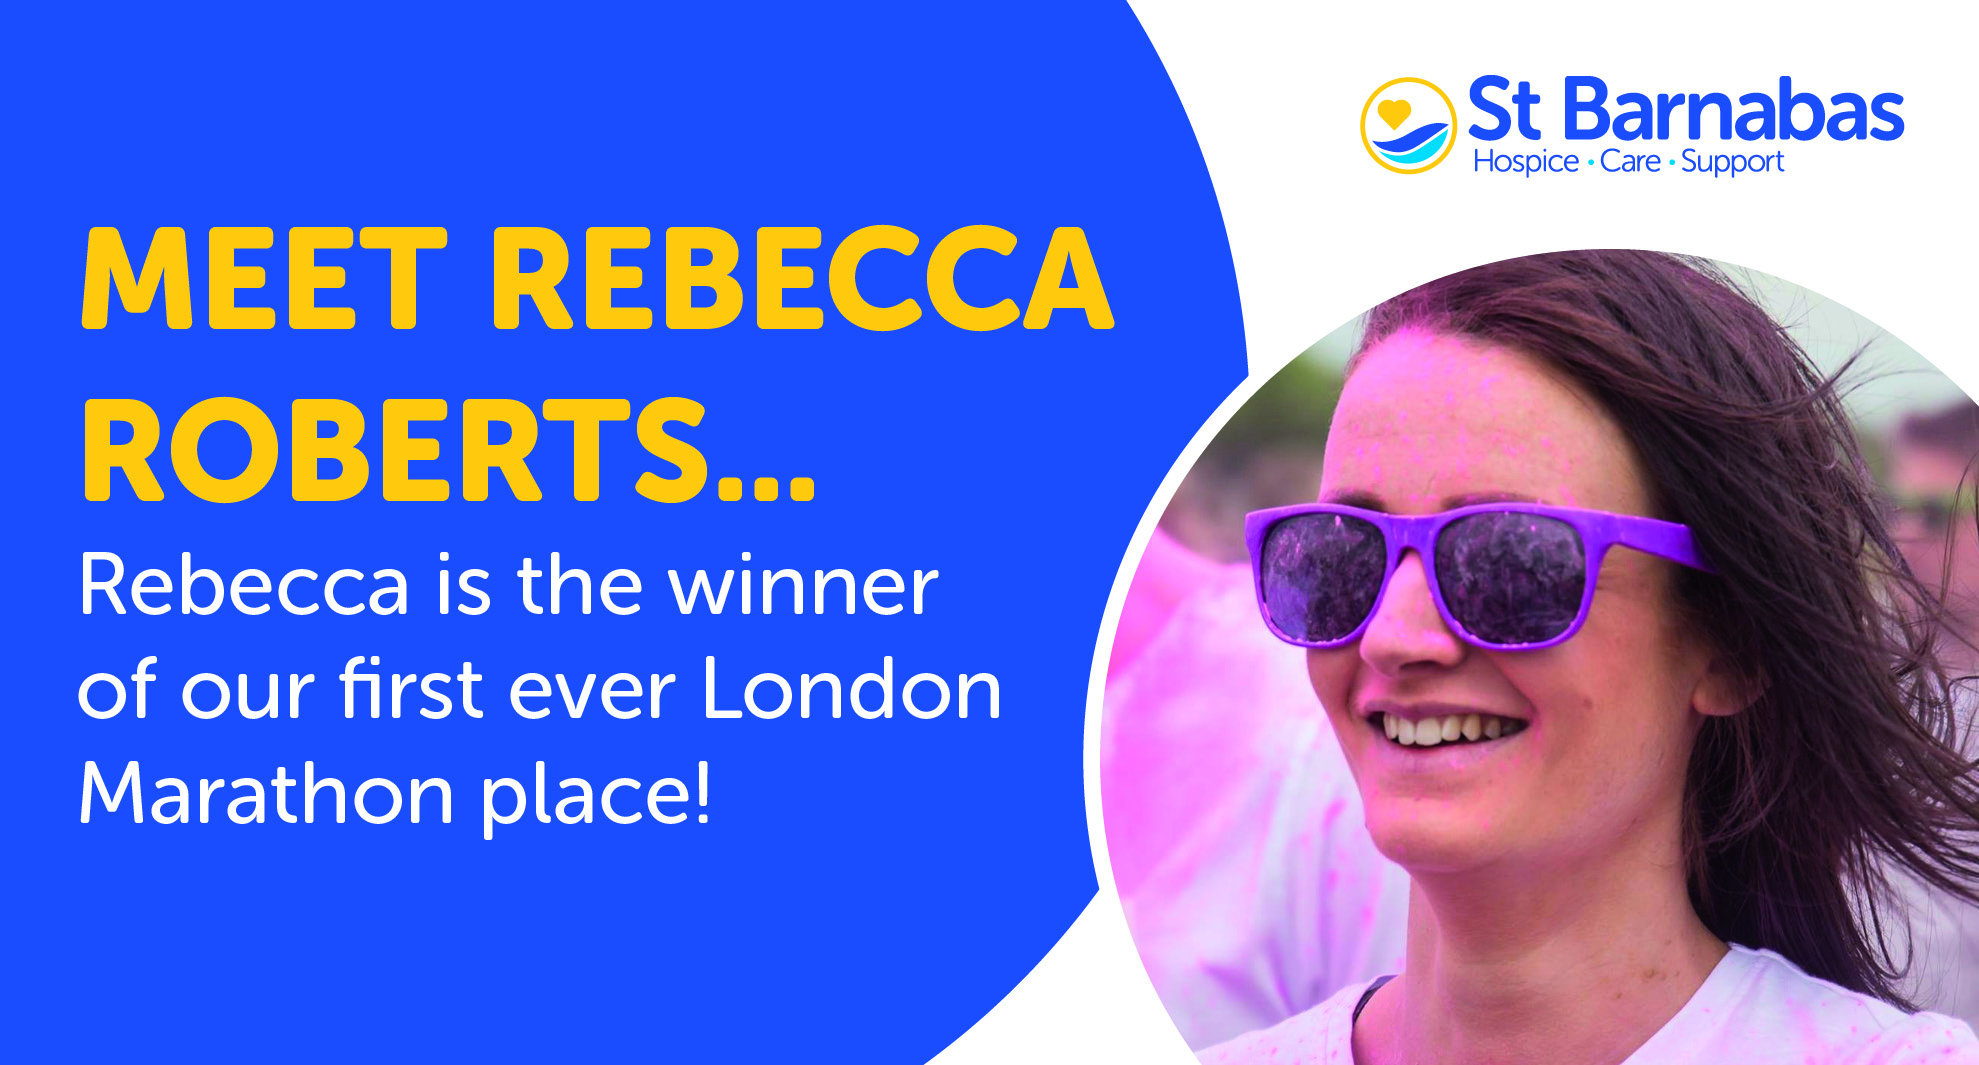 Lady from Lincoln has won St Barnabas Hospice's first London Marathon place